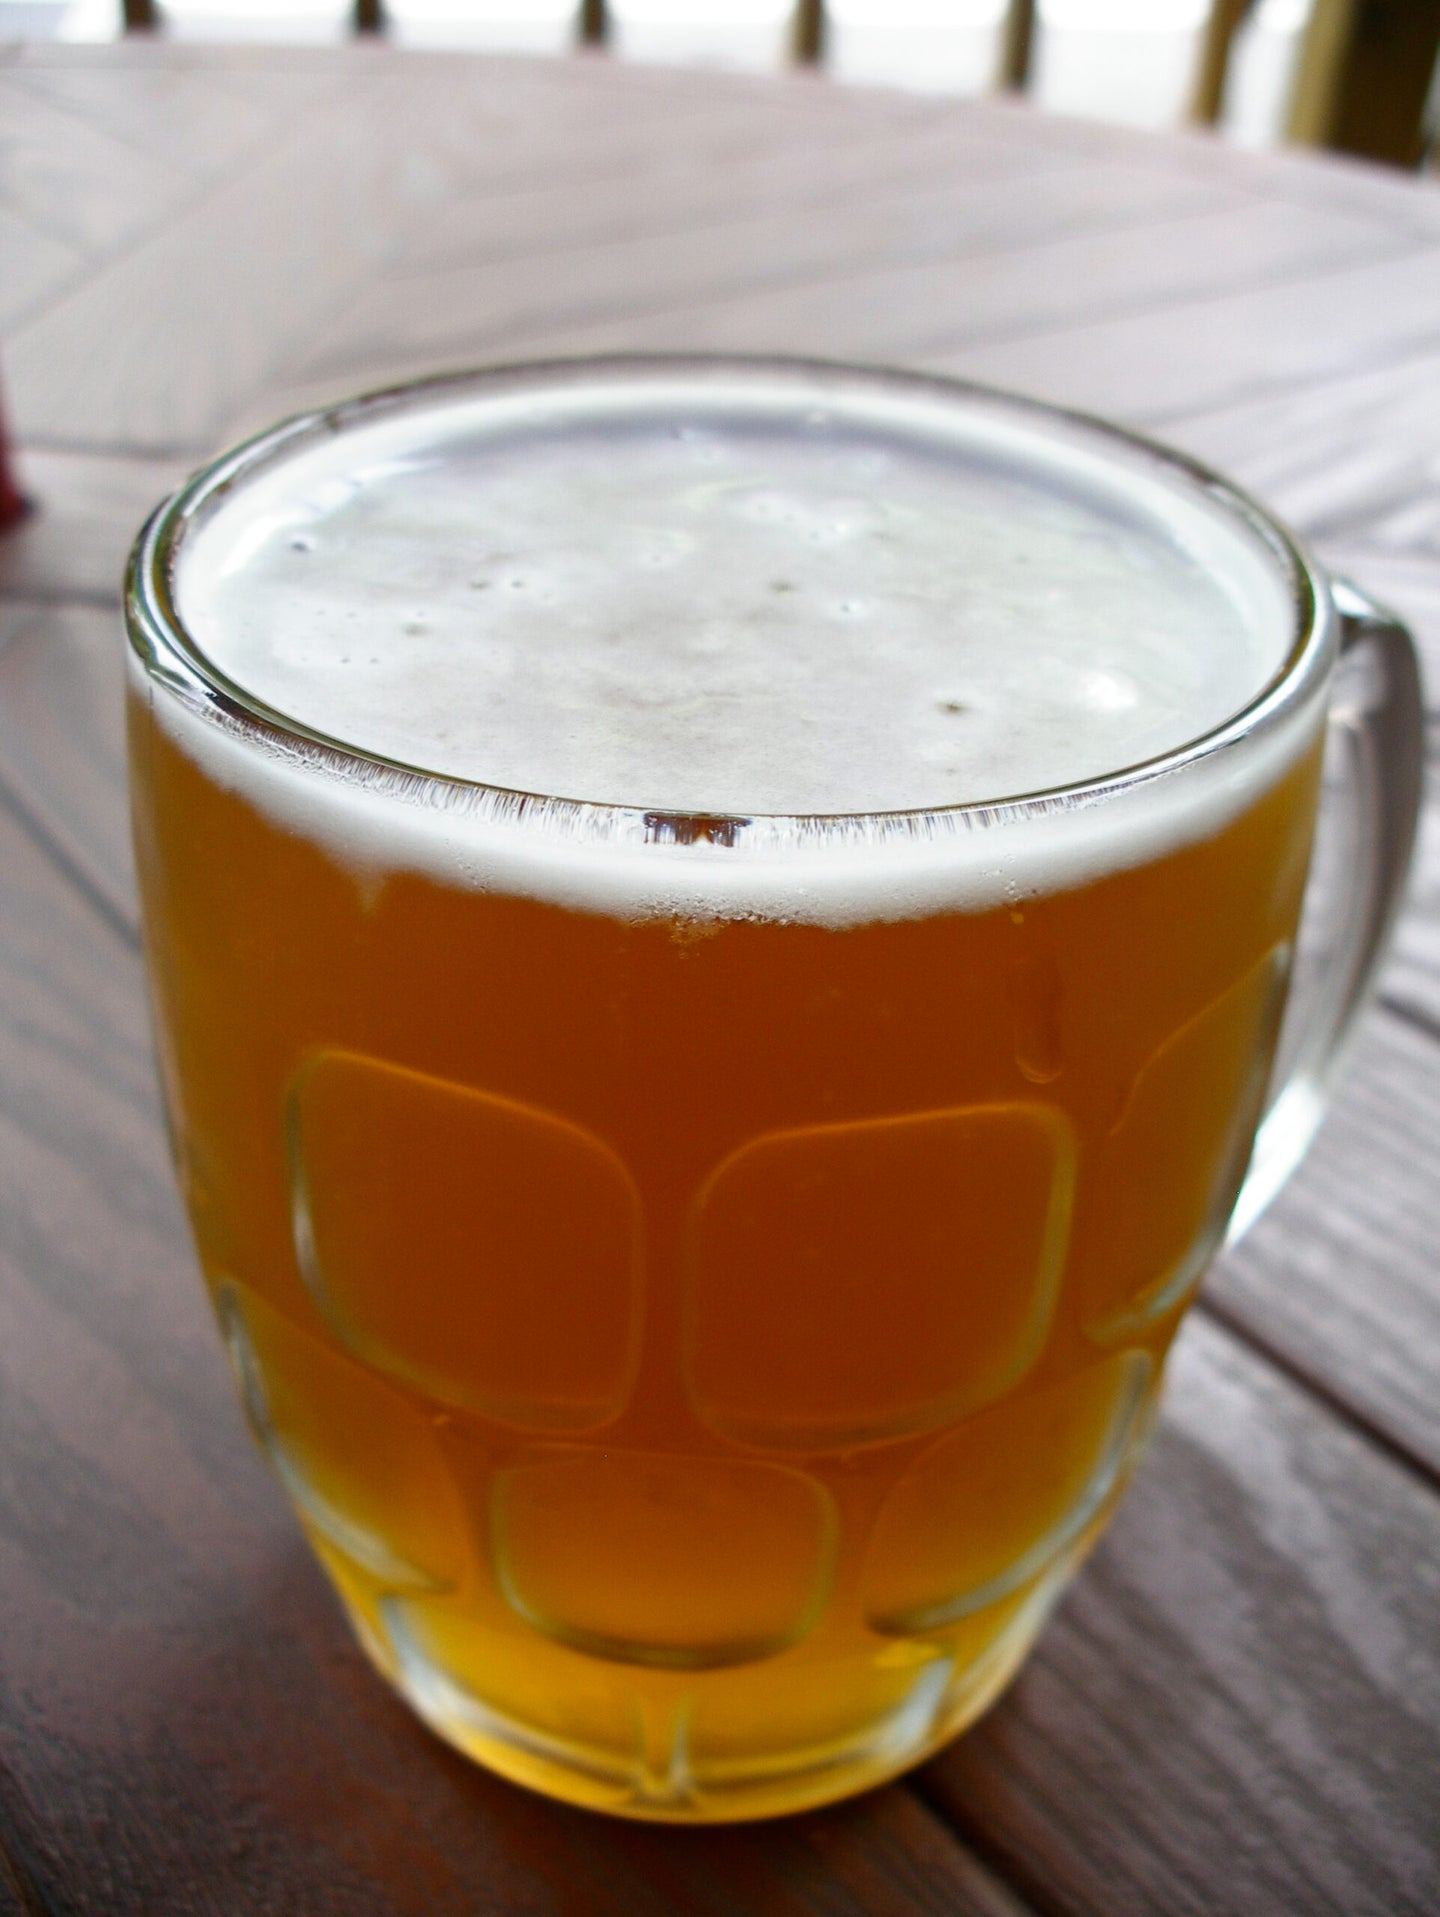 People Were Making Beer In China 5,000 Years Ago